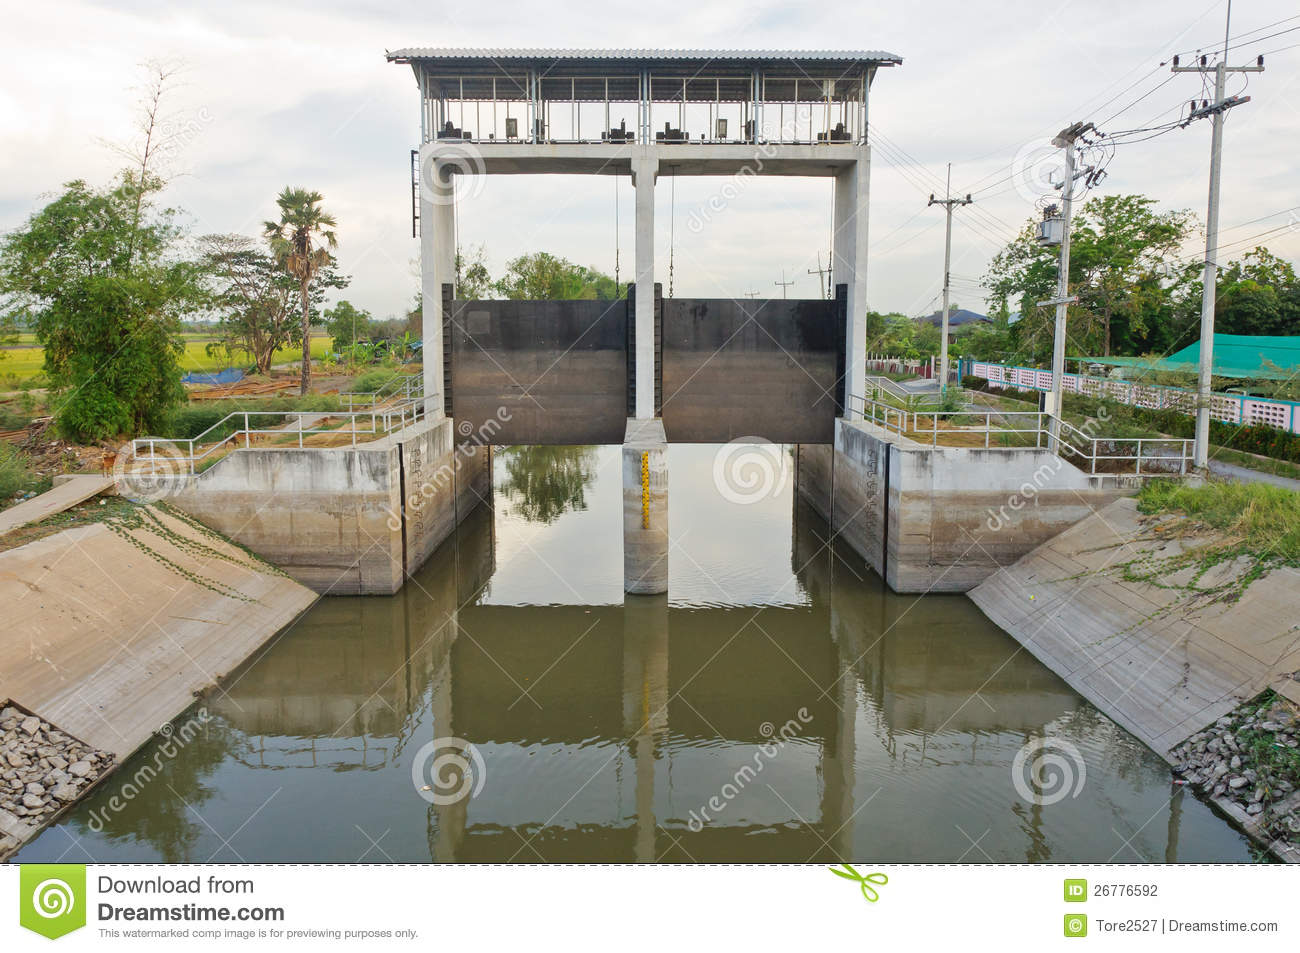 Water Canal Gate http://www.dreamstime.com/stock-photography-water-dam-gate-irrigation-canal-image26776592